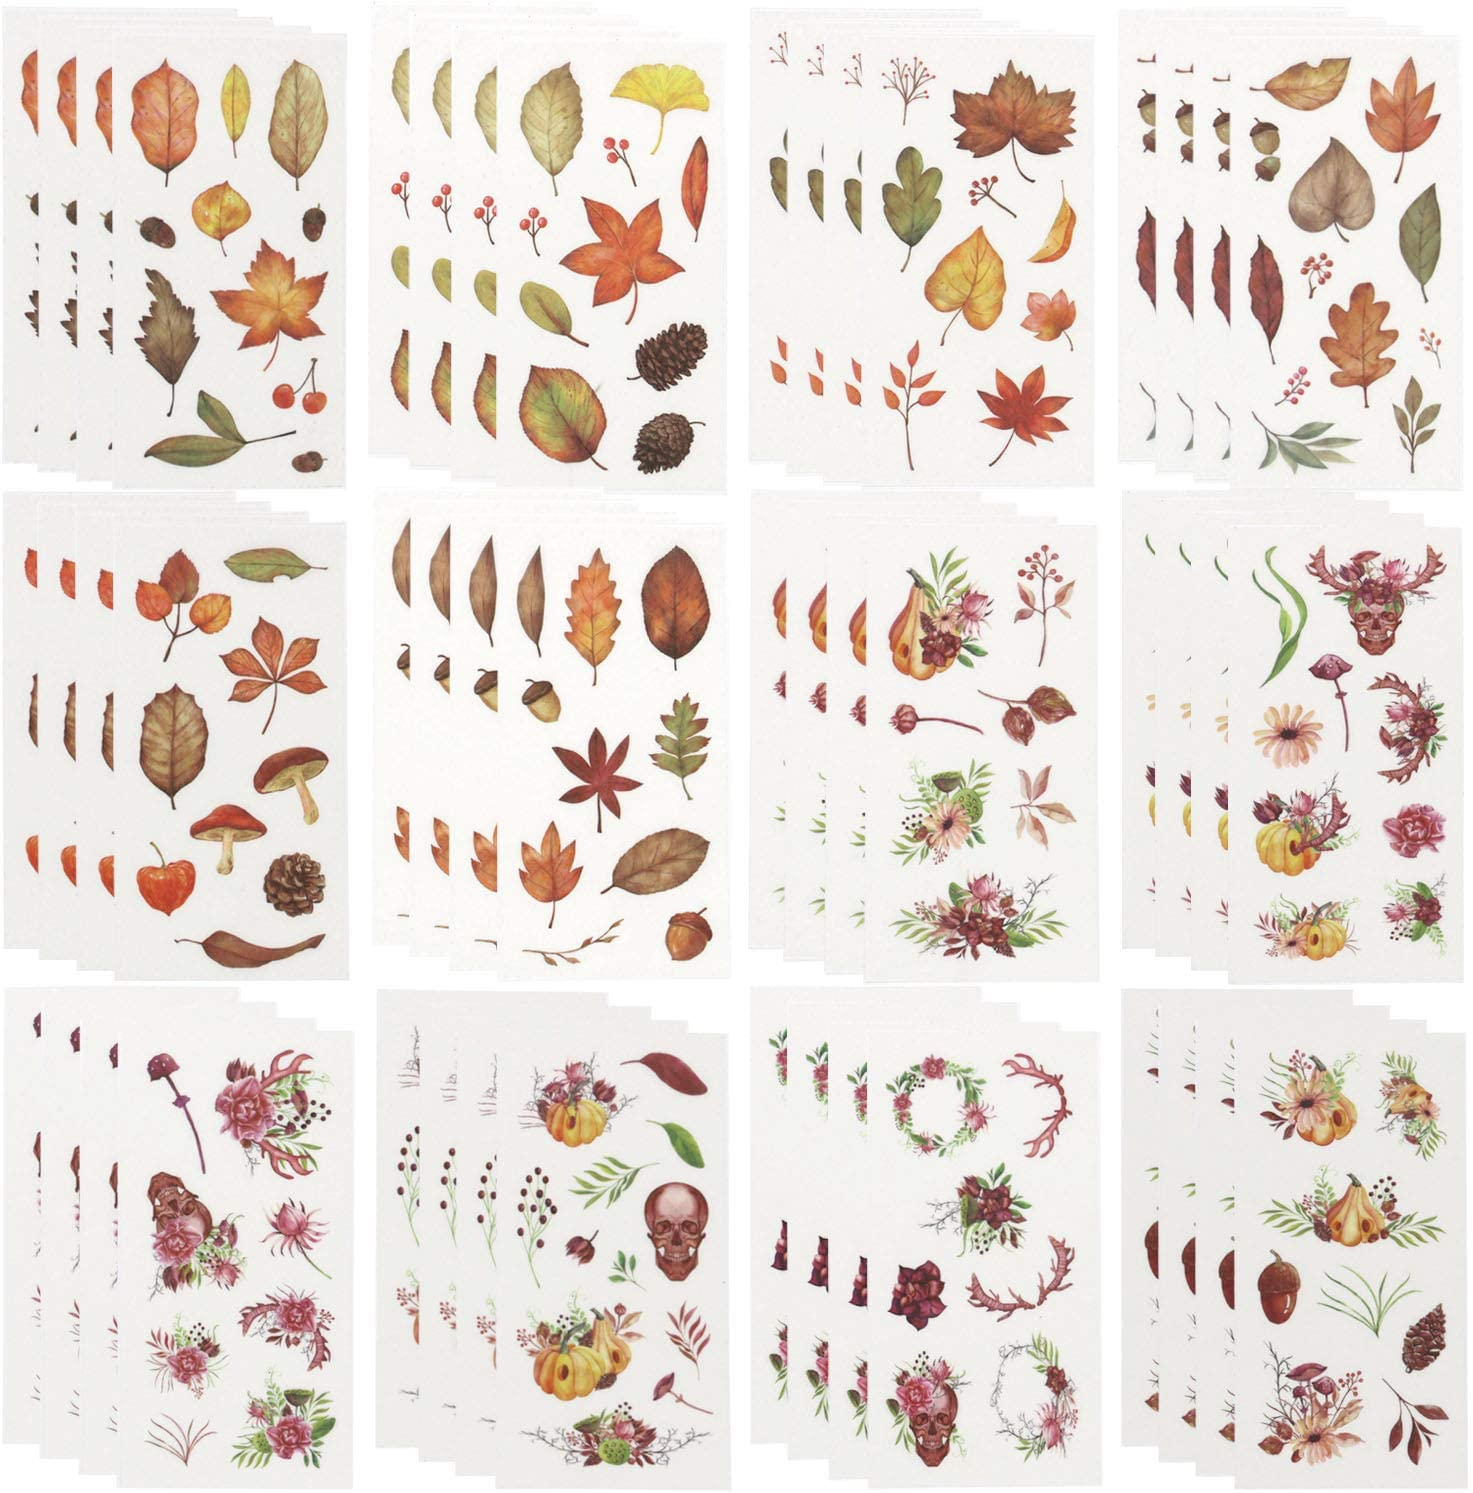 Planner Stickers Set (48 Sheets) Leaves Pumpkins Skulls Stickers Decorative Adhesive Sticker Collection for Scrapbooking, Diary, Album, Bullet Journals, Laptops, Cup, DIY Arts and Craft